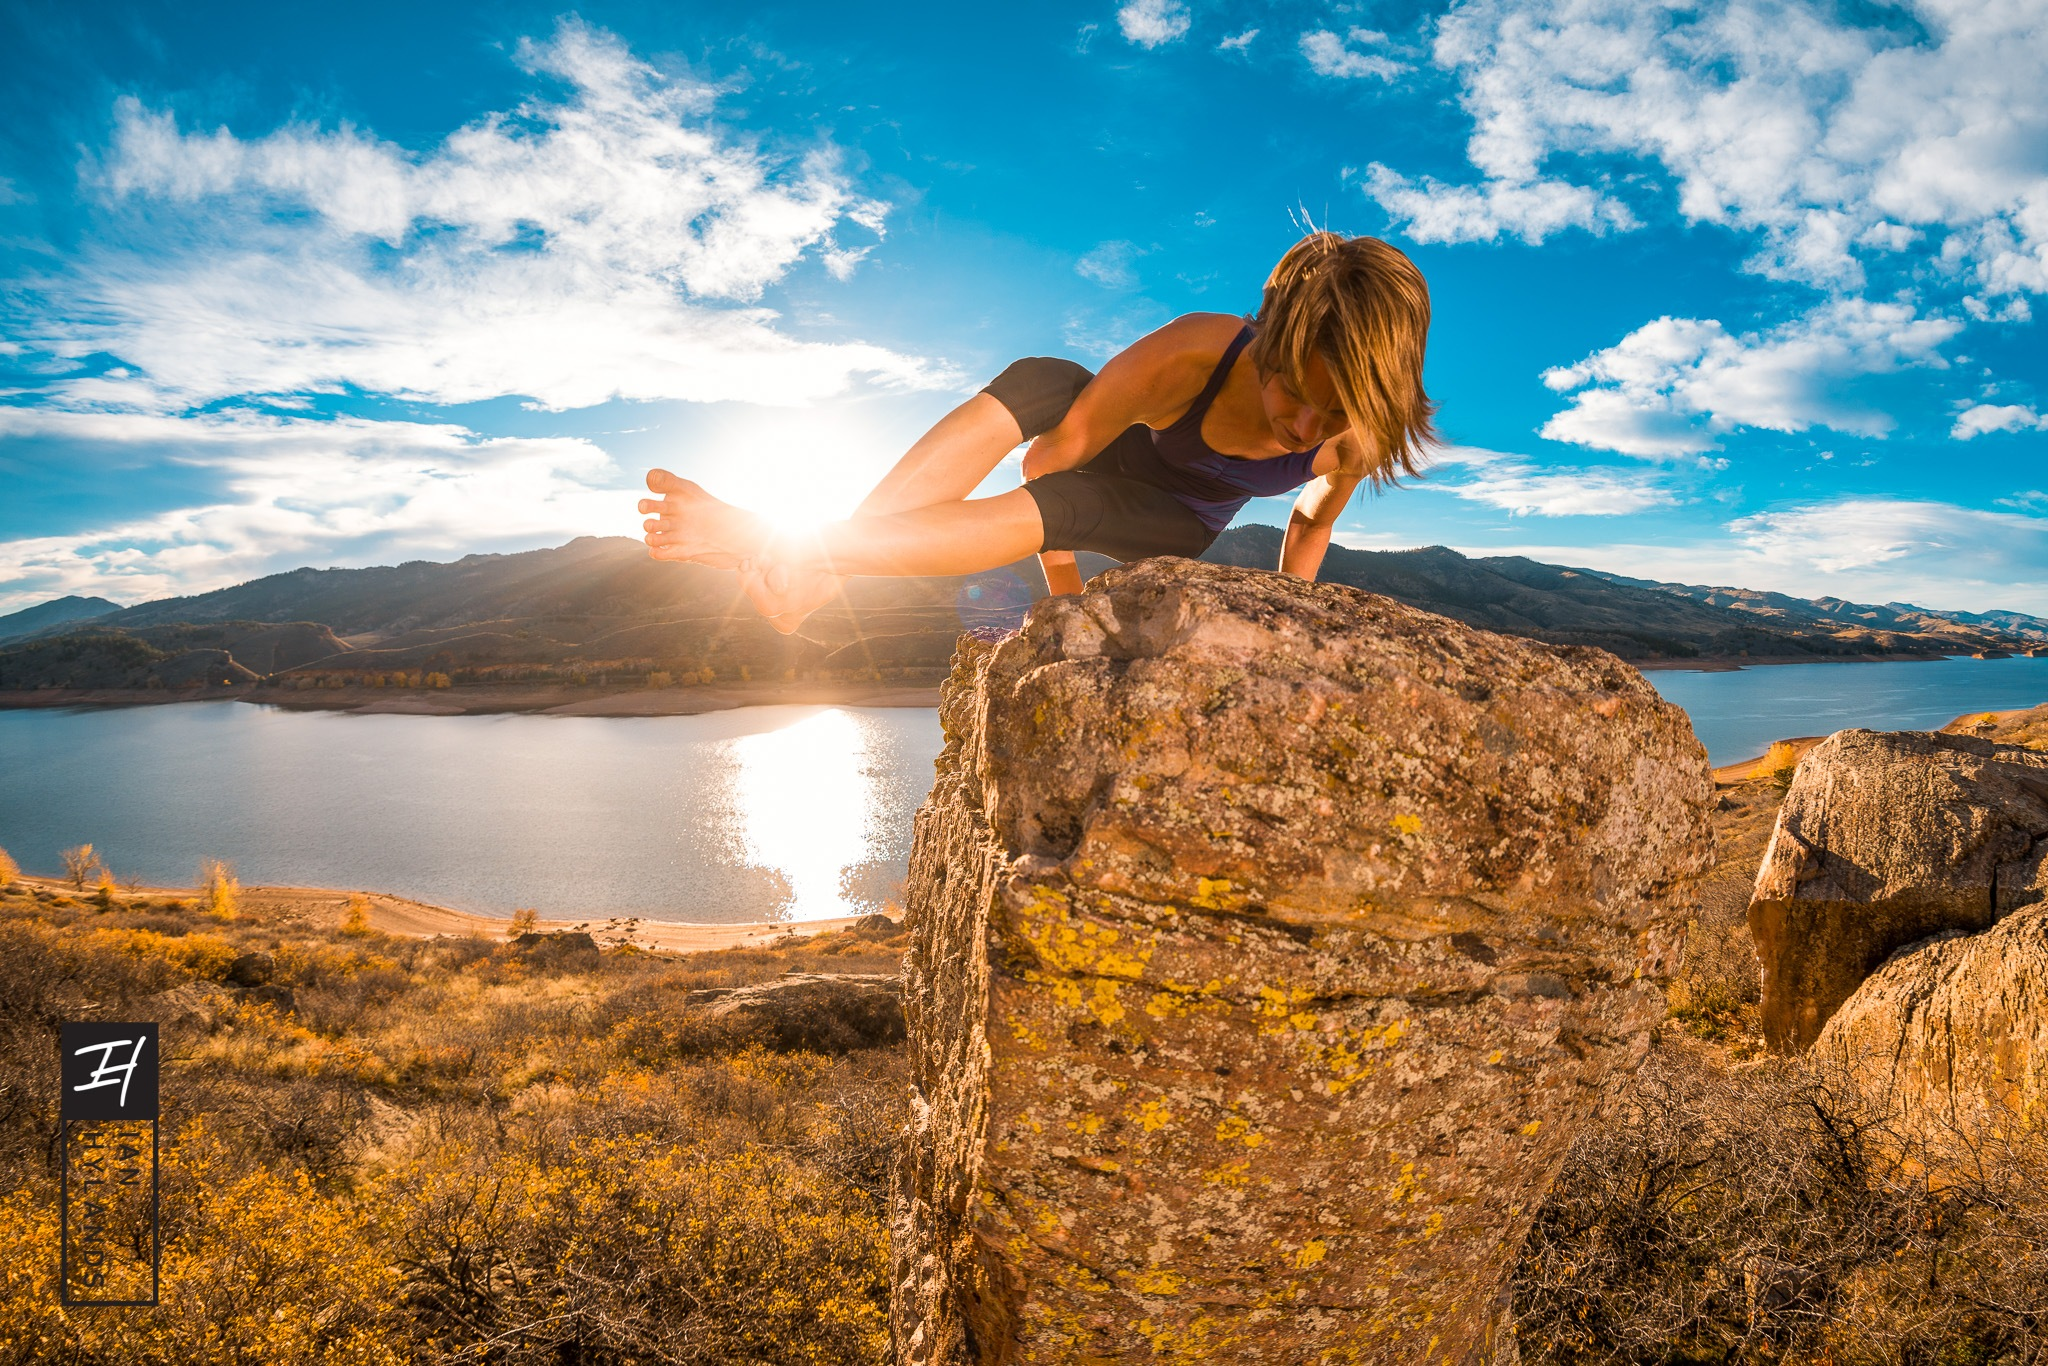 Andrea - Yoga on the Rock by Ian Hylands